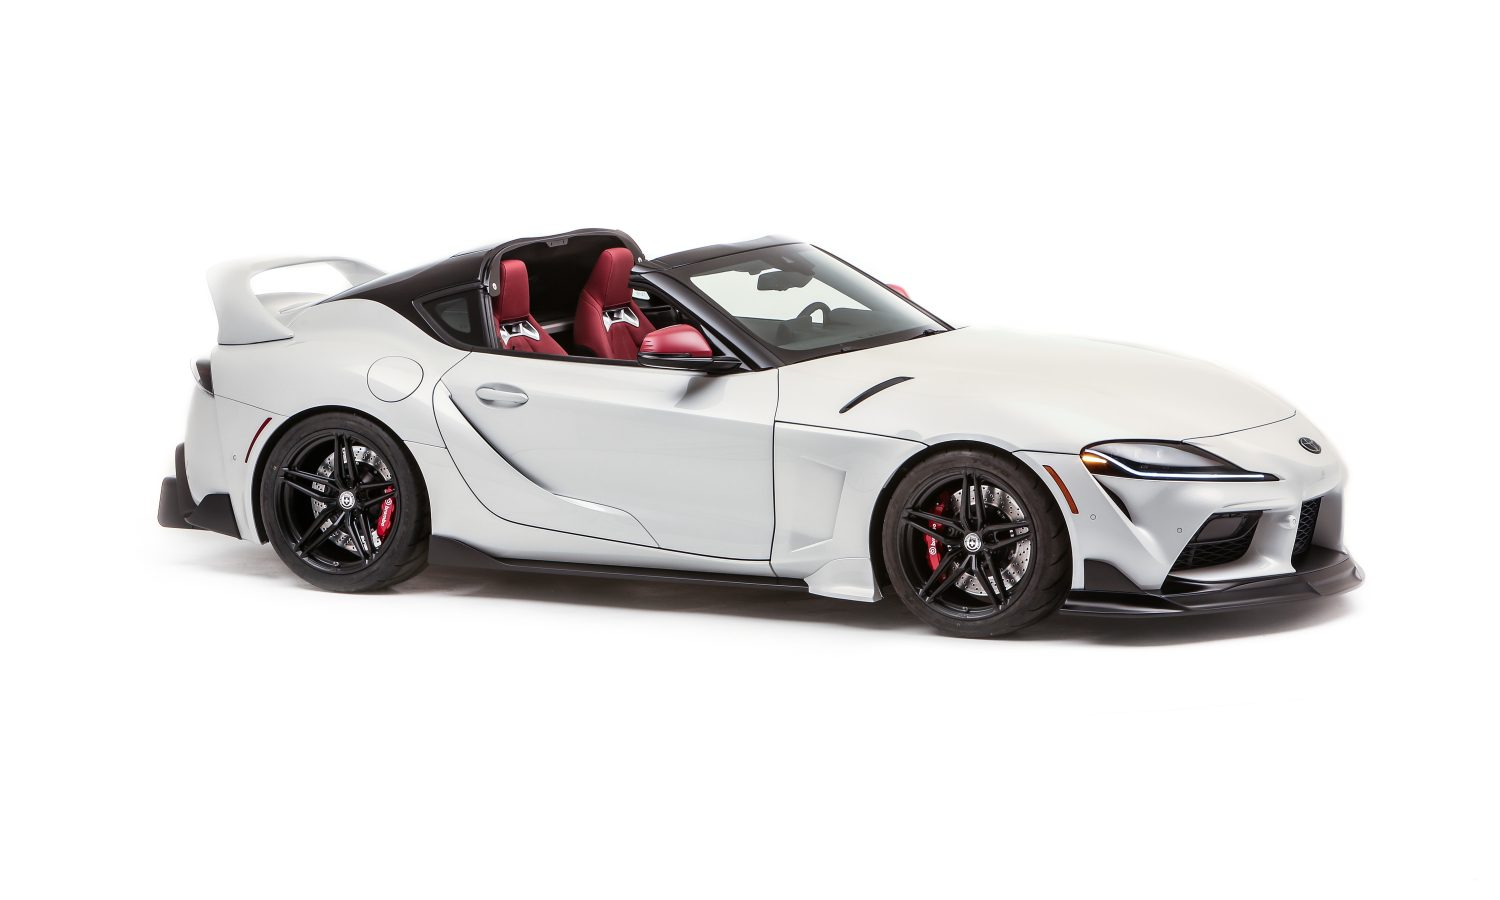 GR Supra Sport Top Blows the Roof Off the Competition